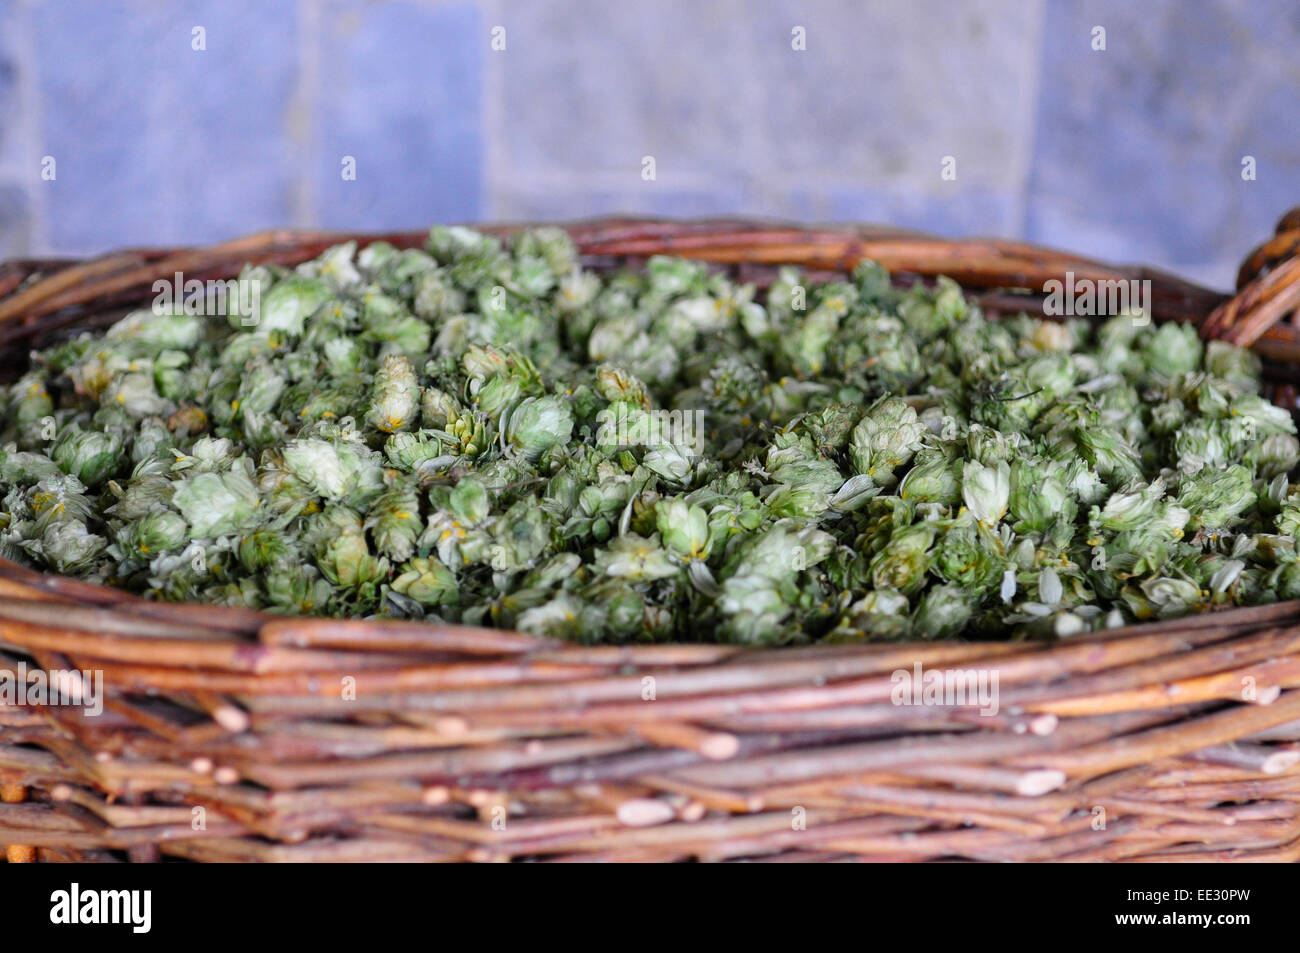 A Basket of Hops in the Czech Republic - Stock Image